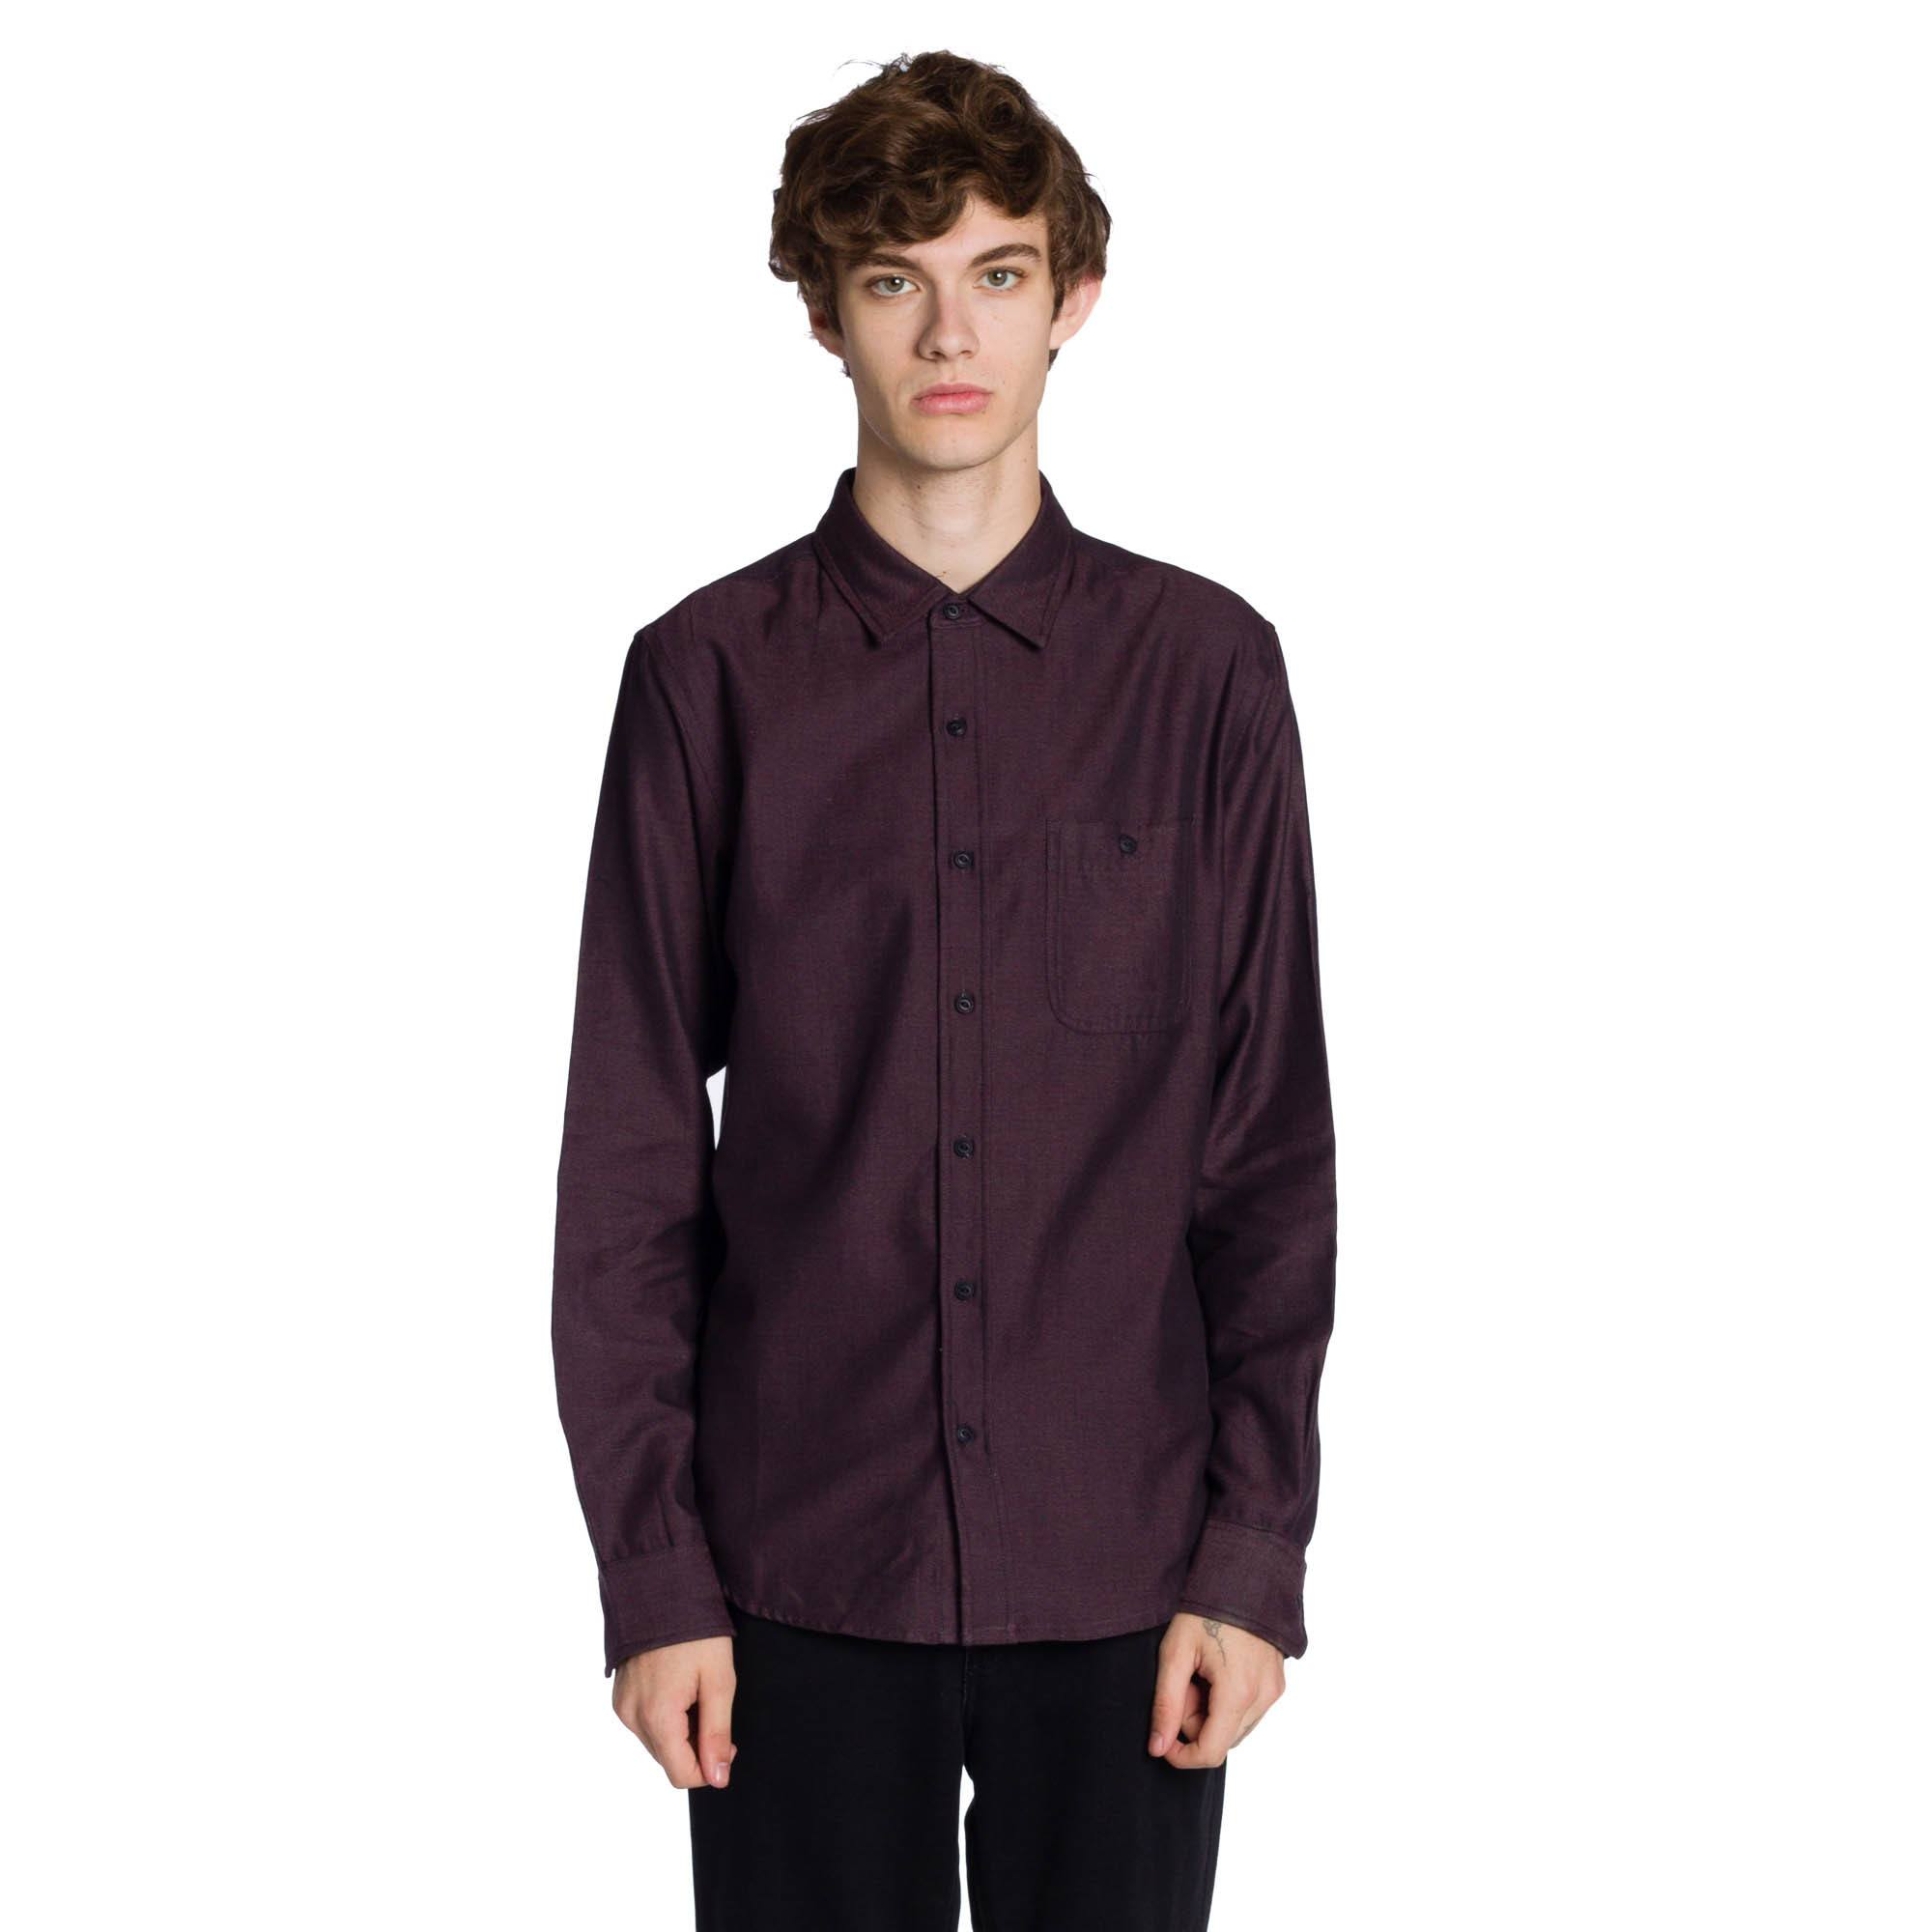 Reserved Long Sleeve Shirt - Wine